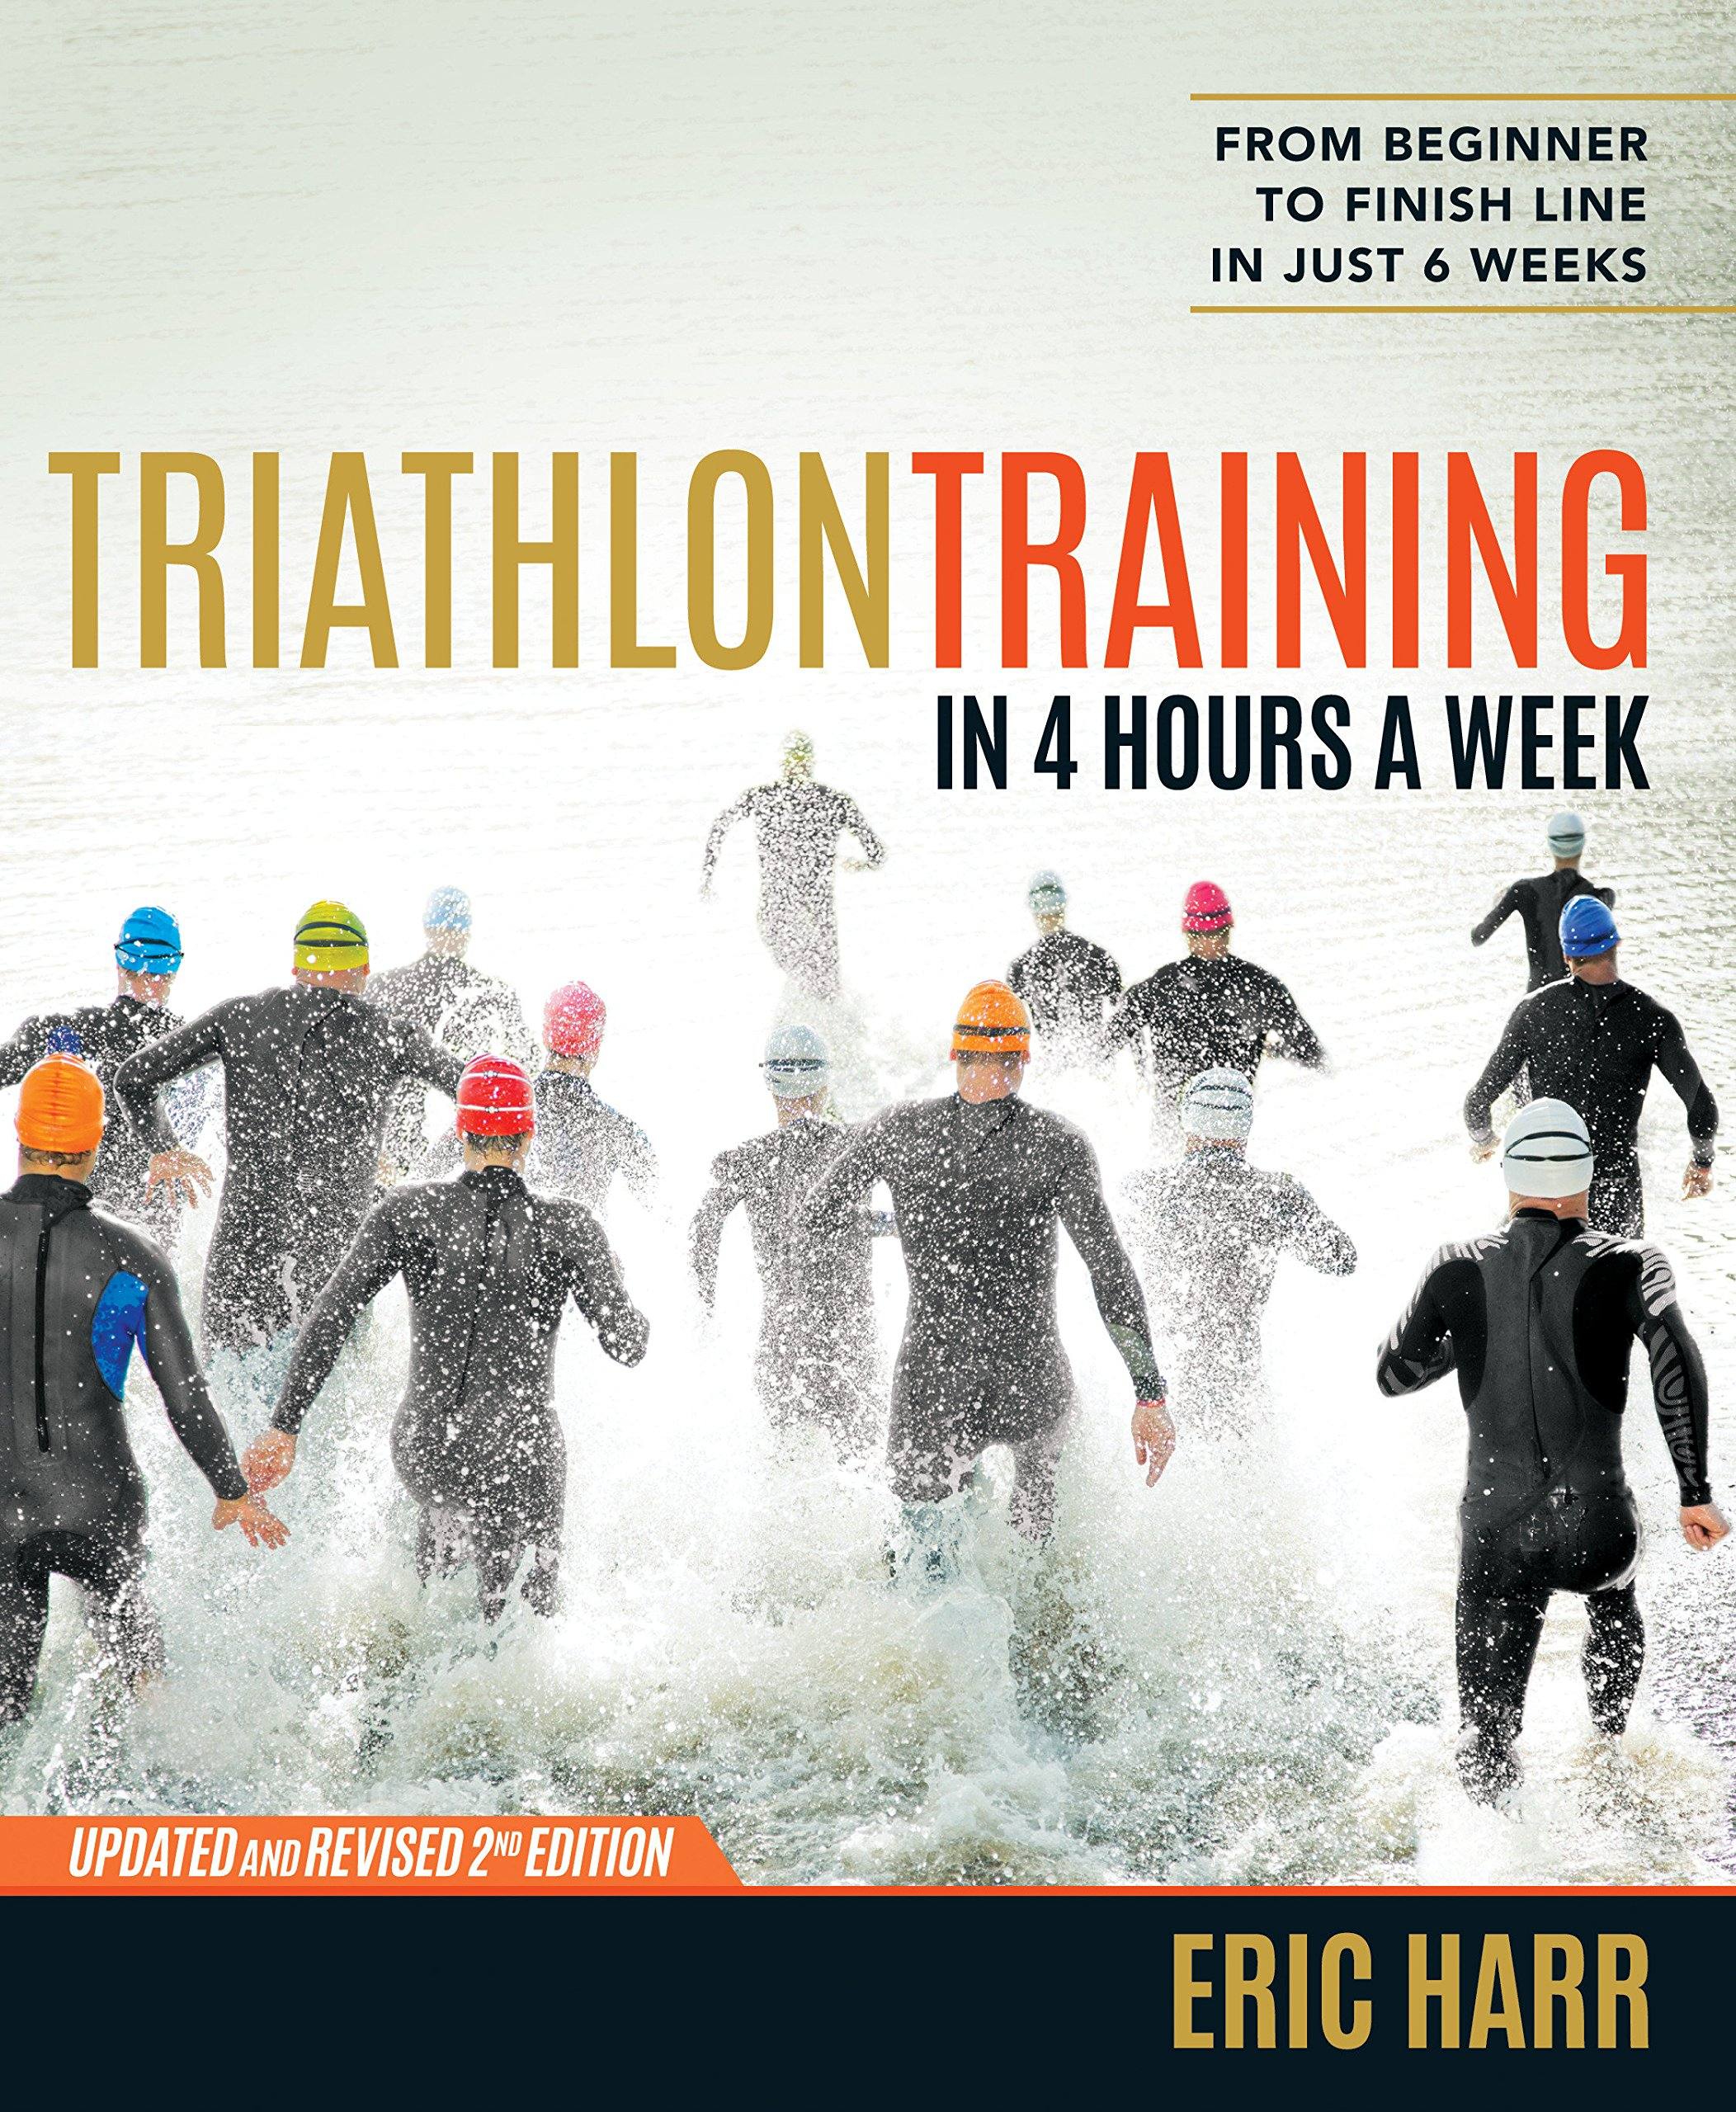 Triathlon Training in 4 Hours a Week: From Beginner to Finish Line in Just 6 Weeks pdf epub